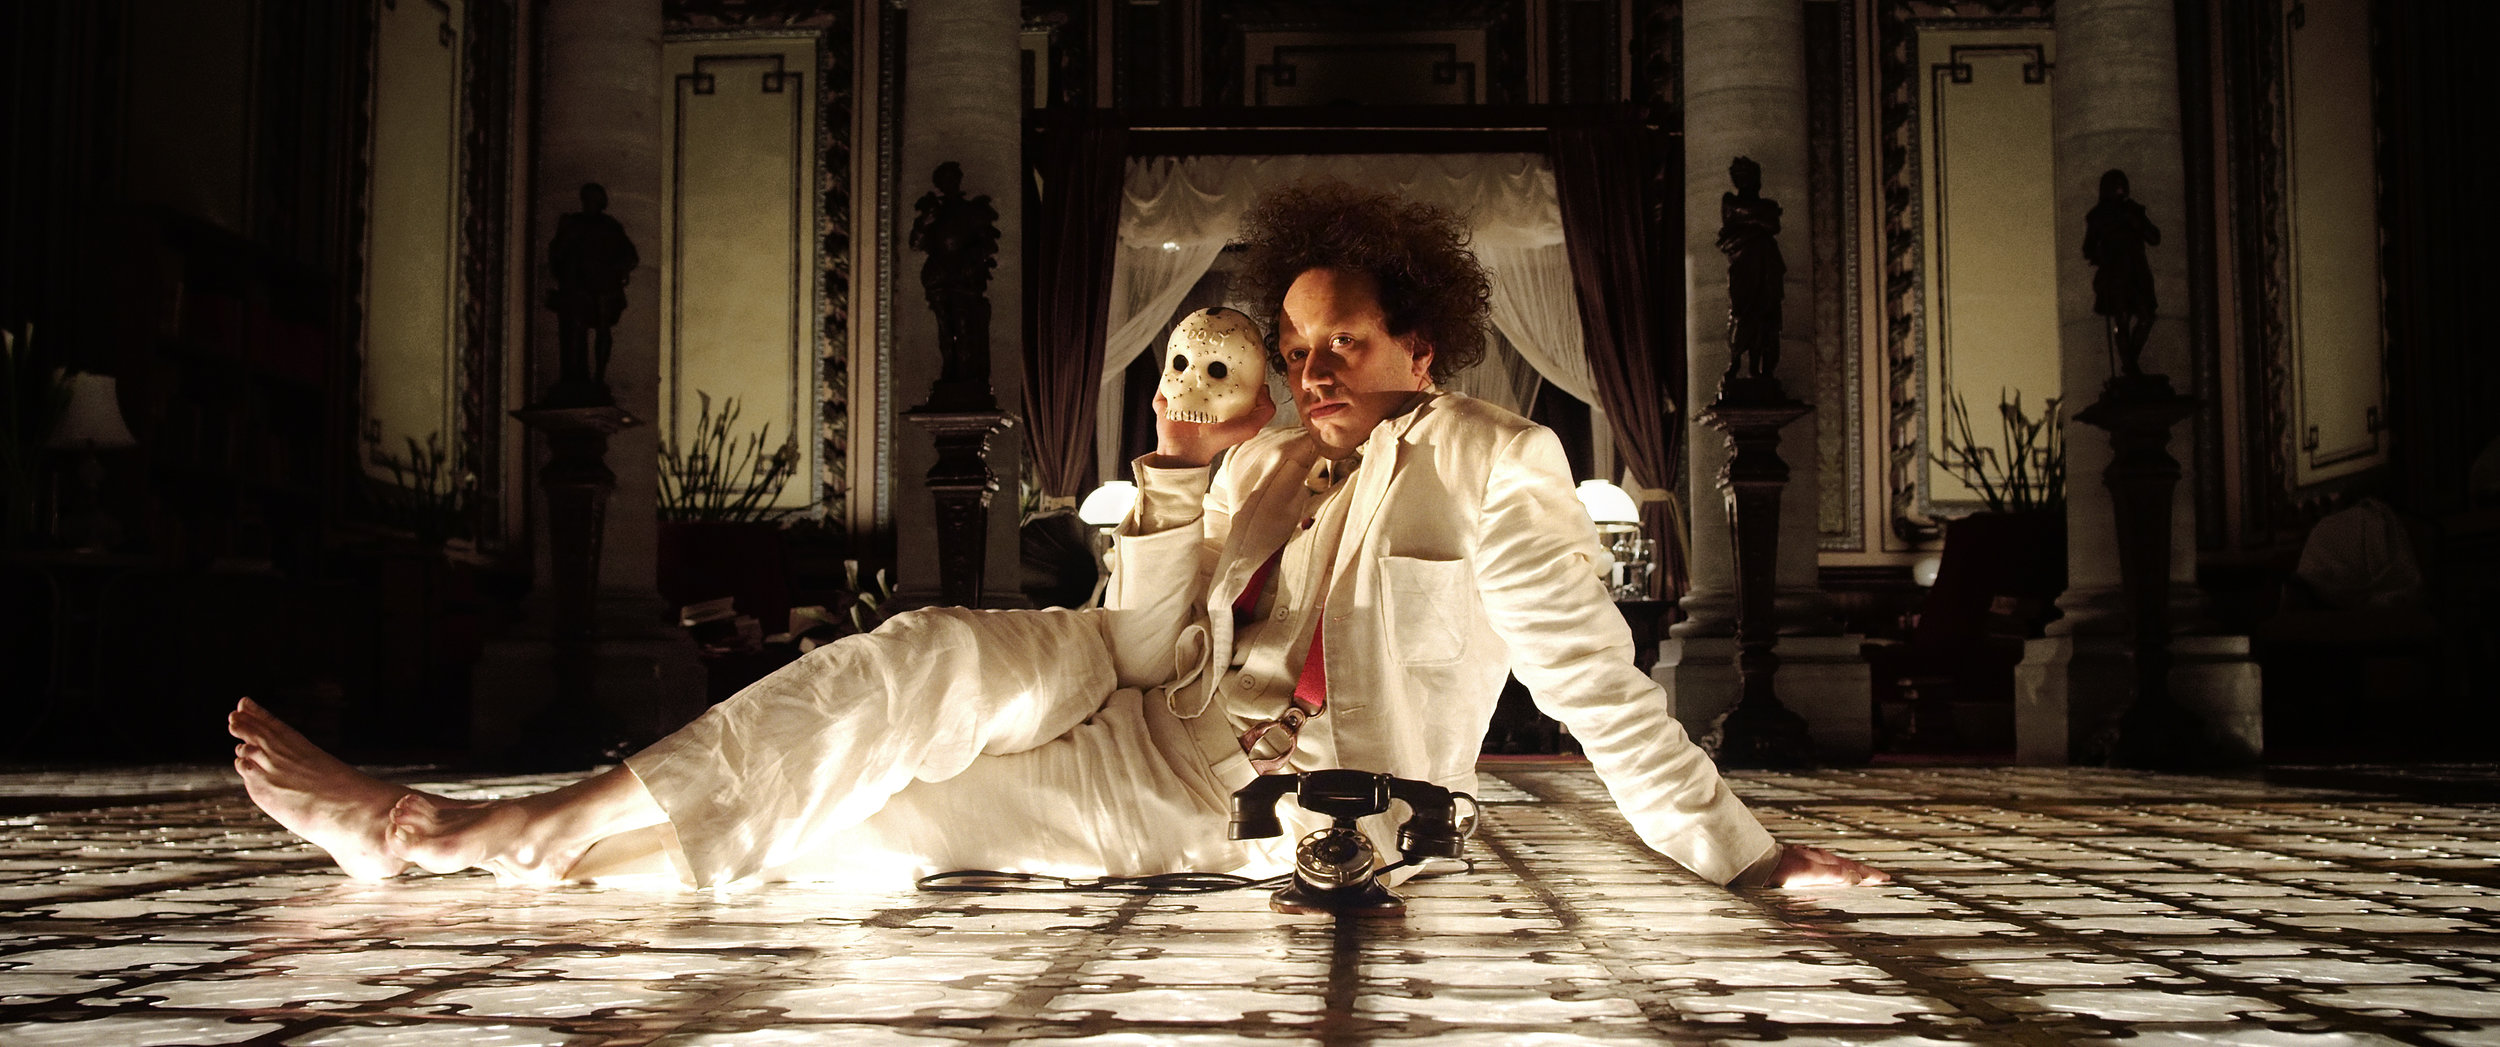 01_EISENSTEIN_In_GUANAJUATO_by_Peter_Greenaway_produced_by_Submarine_Fu_Works_and_Paloma_Negra©Submarine_2015.jpg